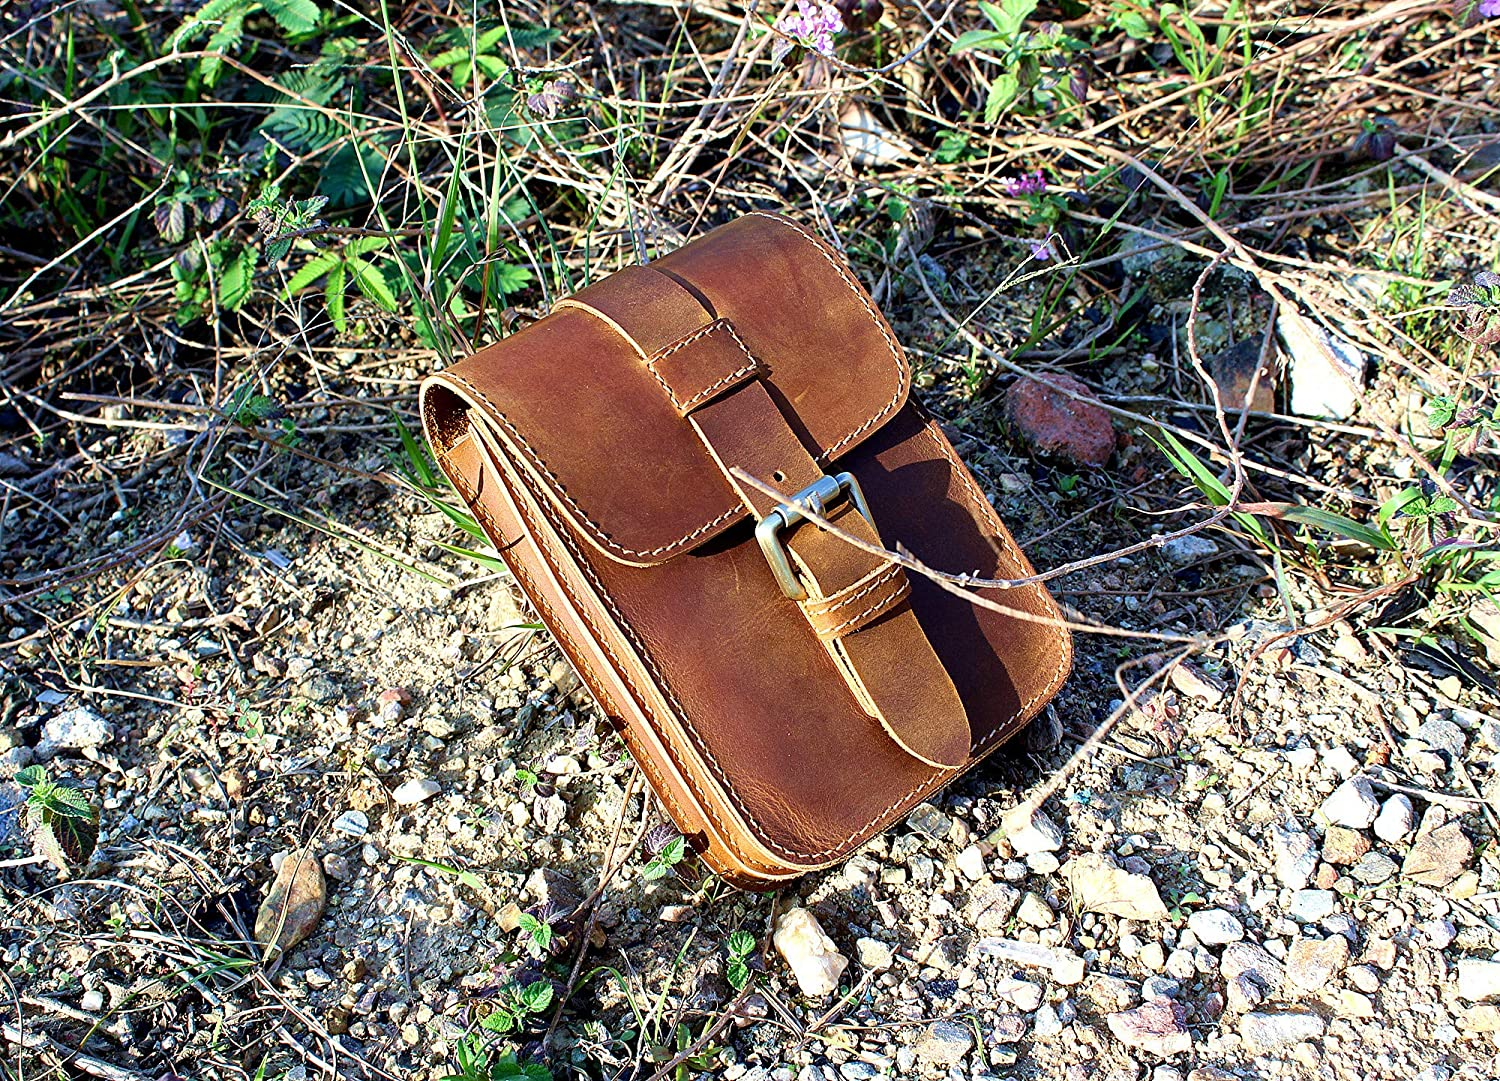 LXFF Mens Genuine Leather Waist Bag Belt Pouch Fanny Pack Hip Bum Bags for Cell Phone Vintage Brown